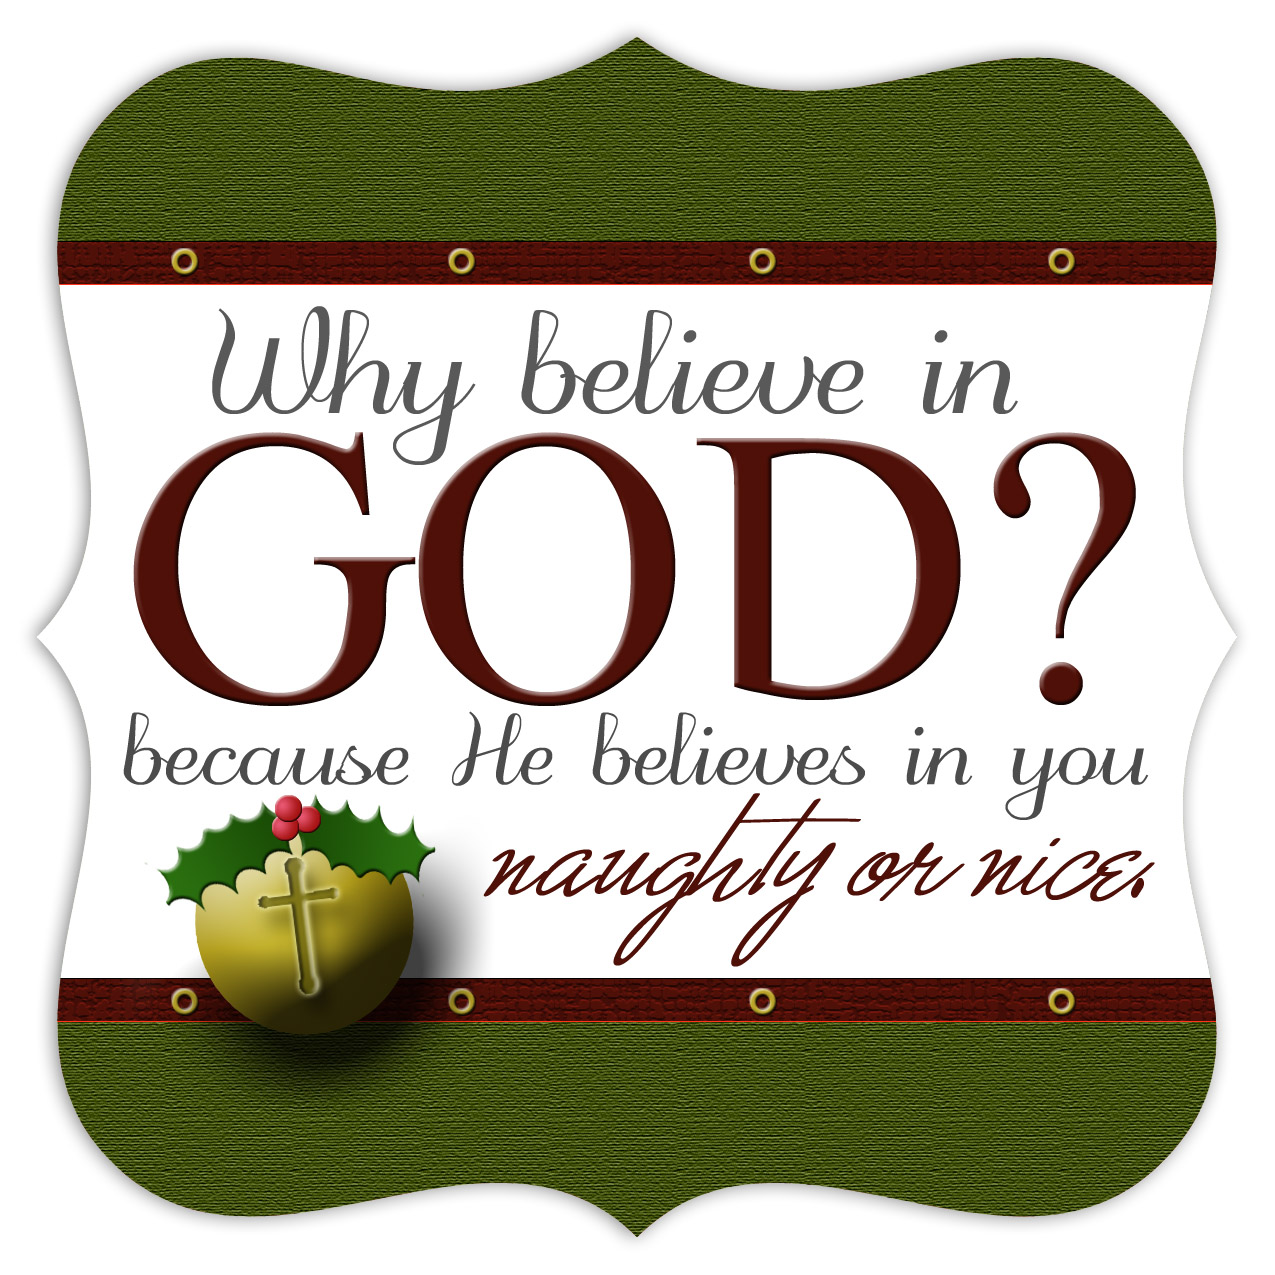 why you believe in God?